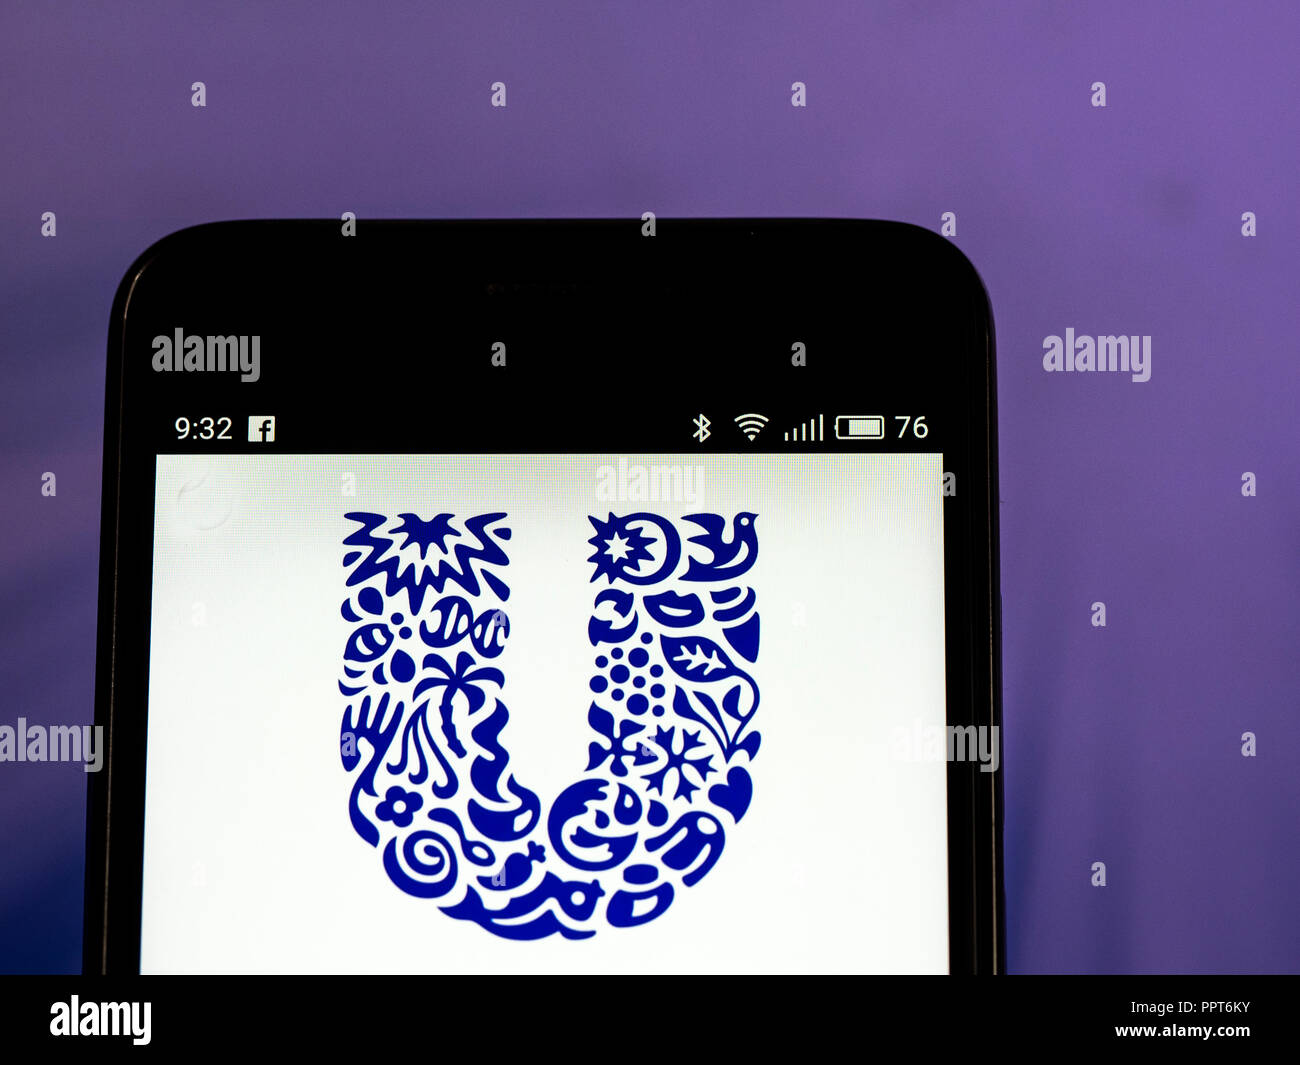 Unilever logo seen displayed on smart phone. Unilever is a British-Dutch transnational consumer goods company co-headquartered in London, United Kingdom and Rotterdam, Netherlands. Its products include food and beverages, cleaning agents and personal care products. - Stock Image